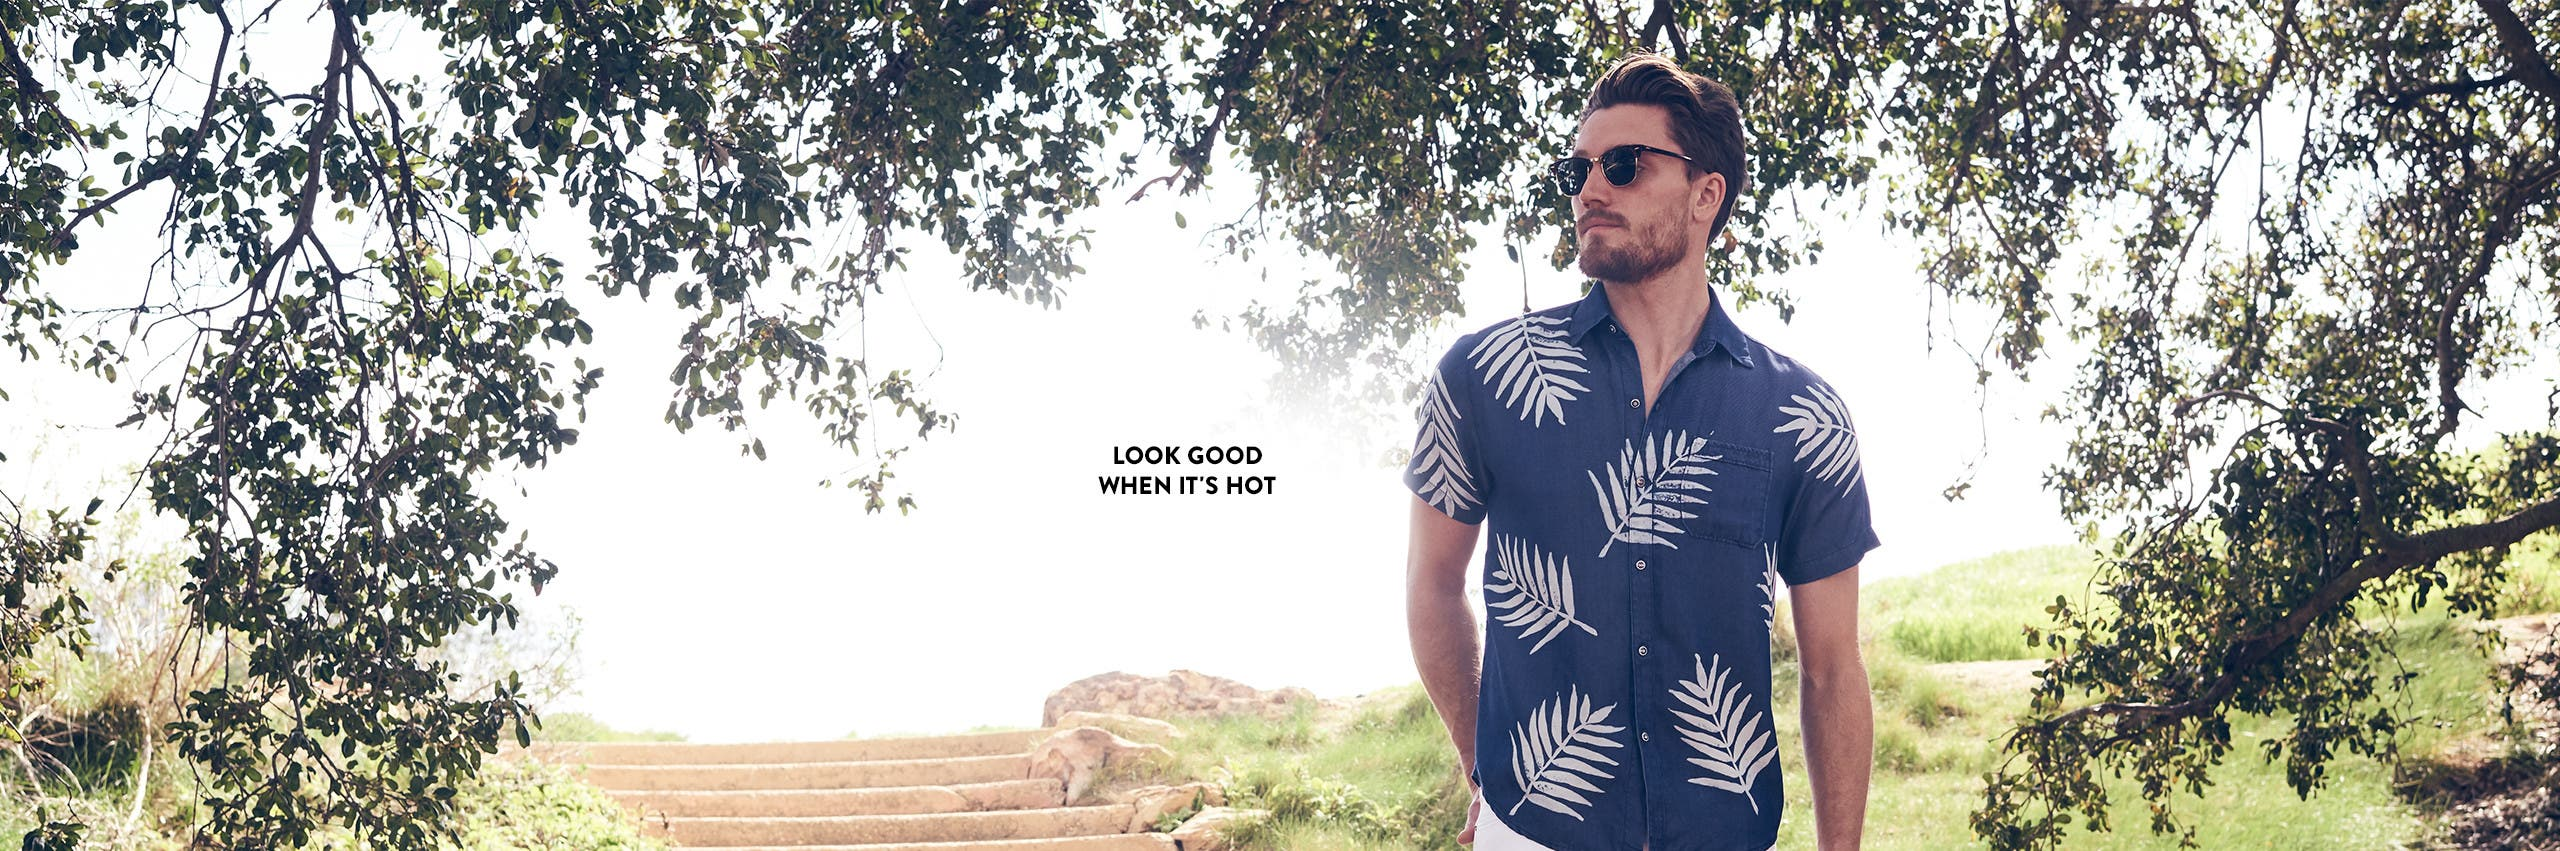 Look good when it's hot: summer-ready styles for men.